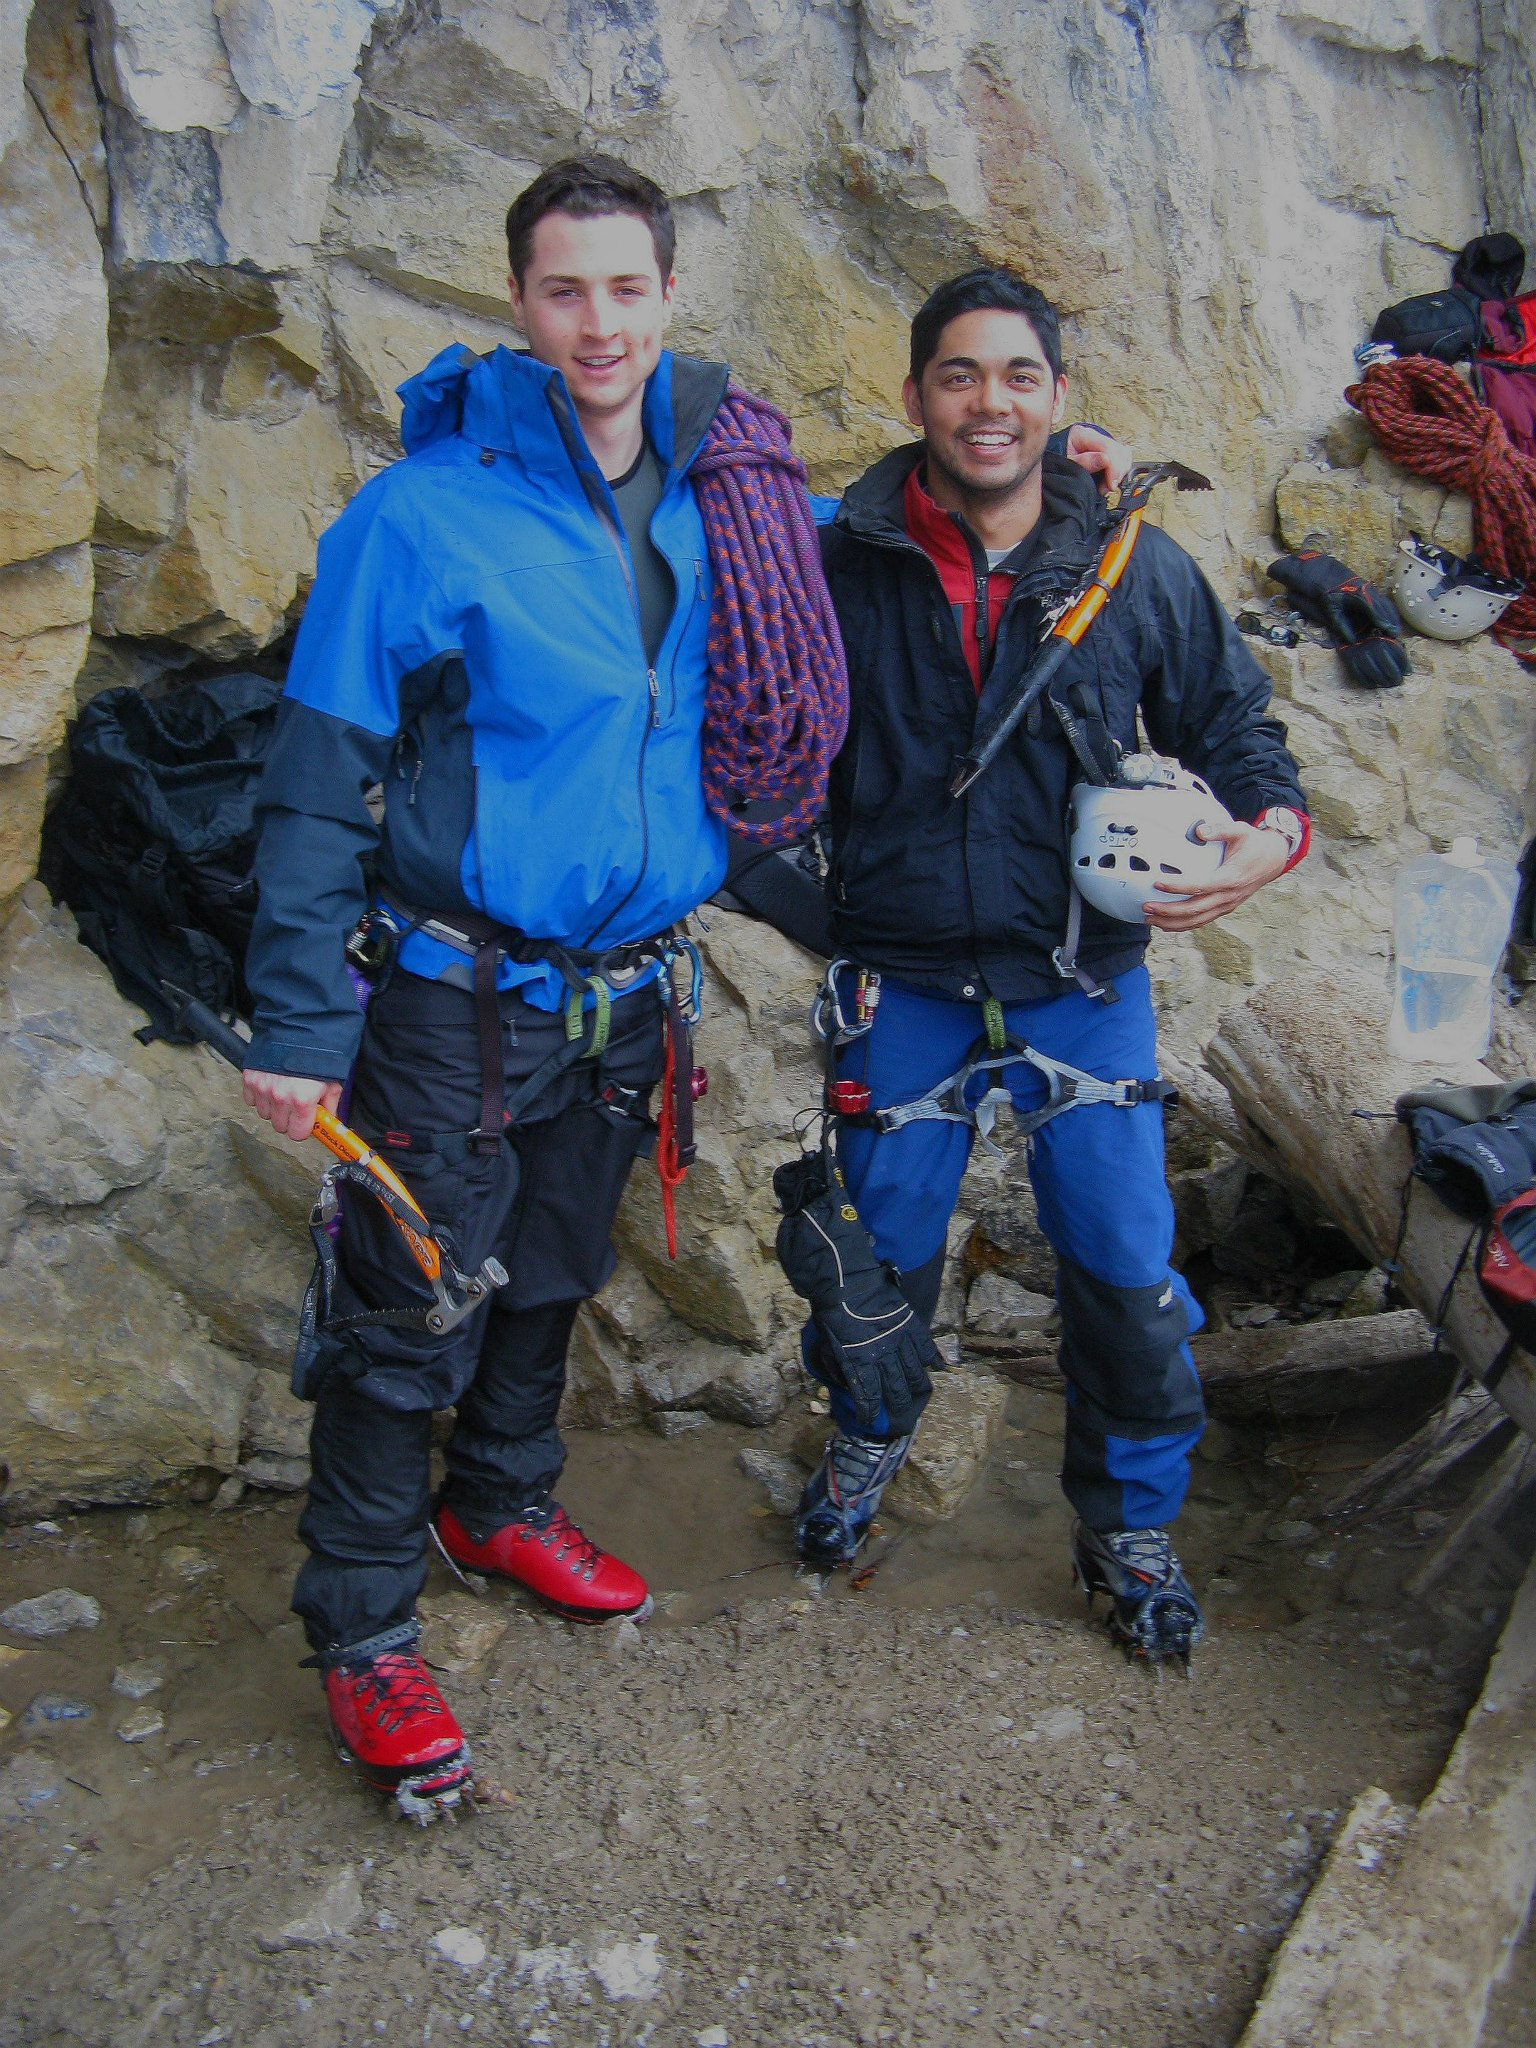 Isaiah (on the left) and a friend on an ice climb.